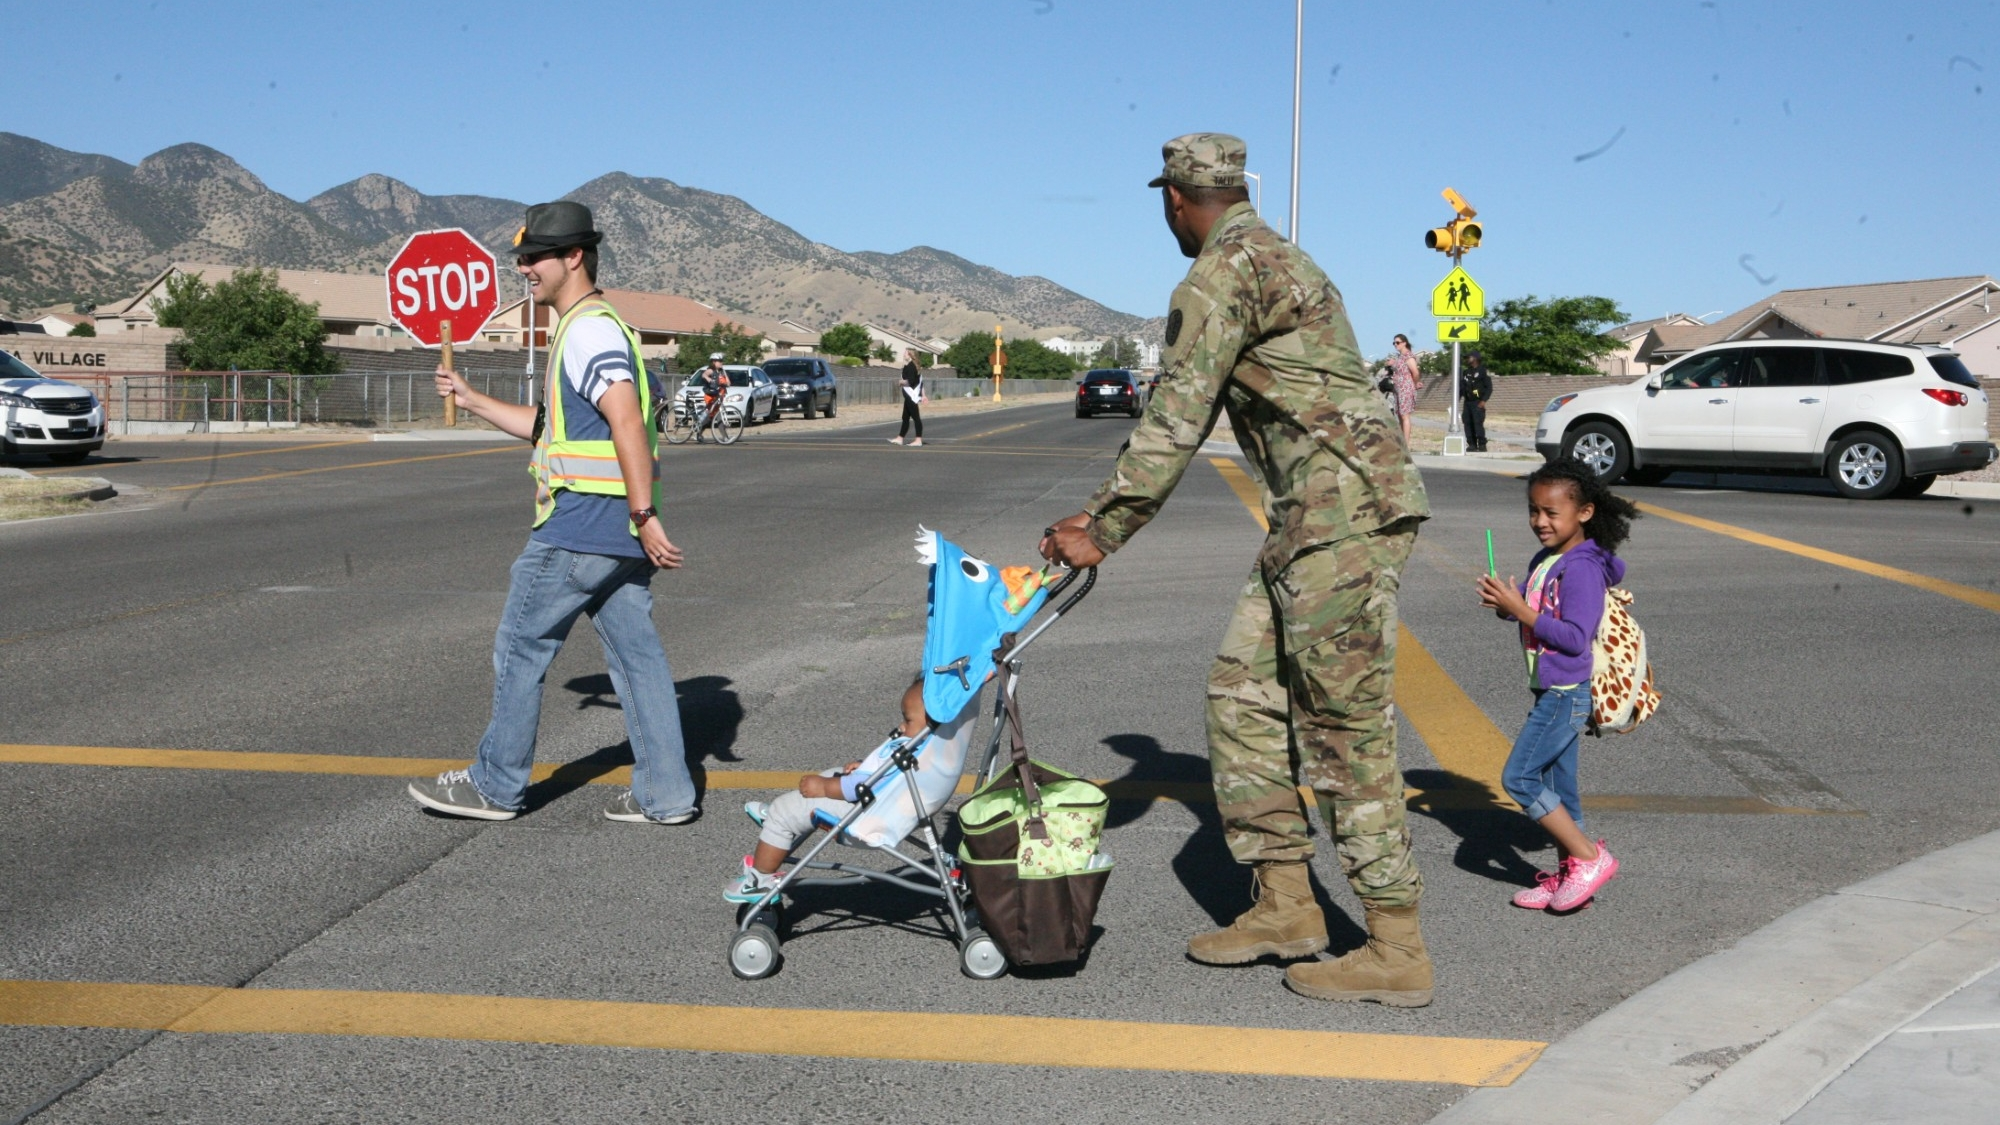 An officer walking his children to school and daycare on Bike and Walk to School and Work Day at Fort Huachuca, Arizona, May 4, 2016